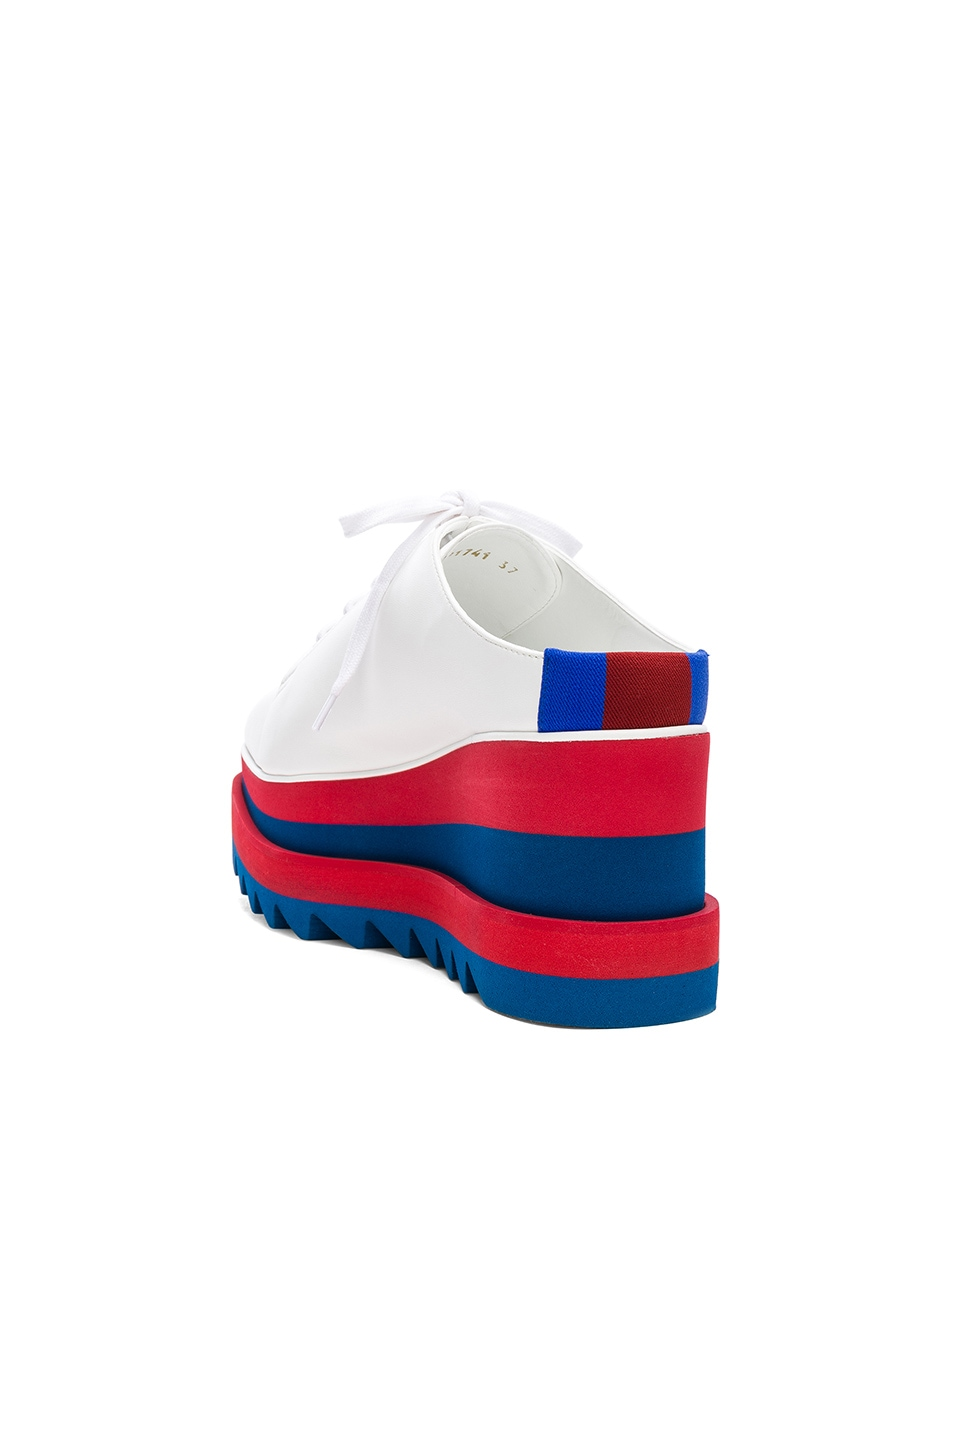 Image 3 of Stella McCartney Platform Wedge Oxford Mules in White, Red & Blue